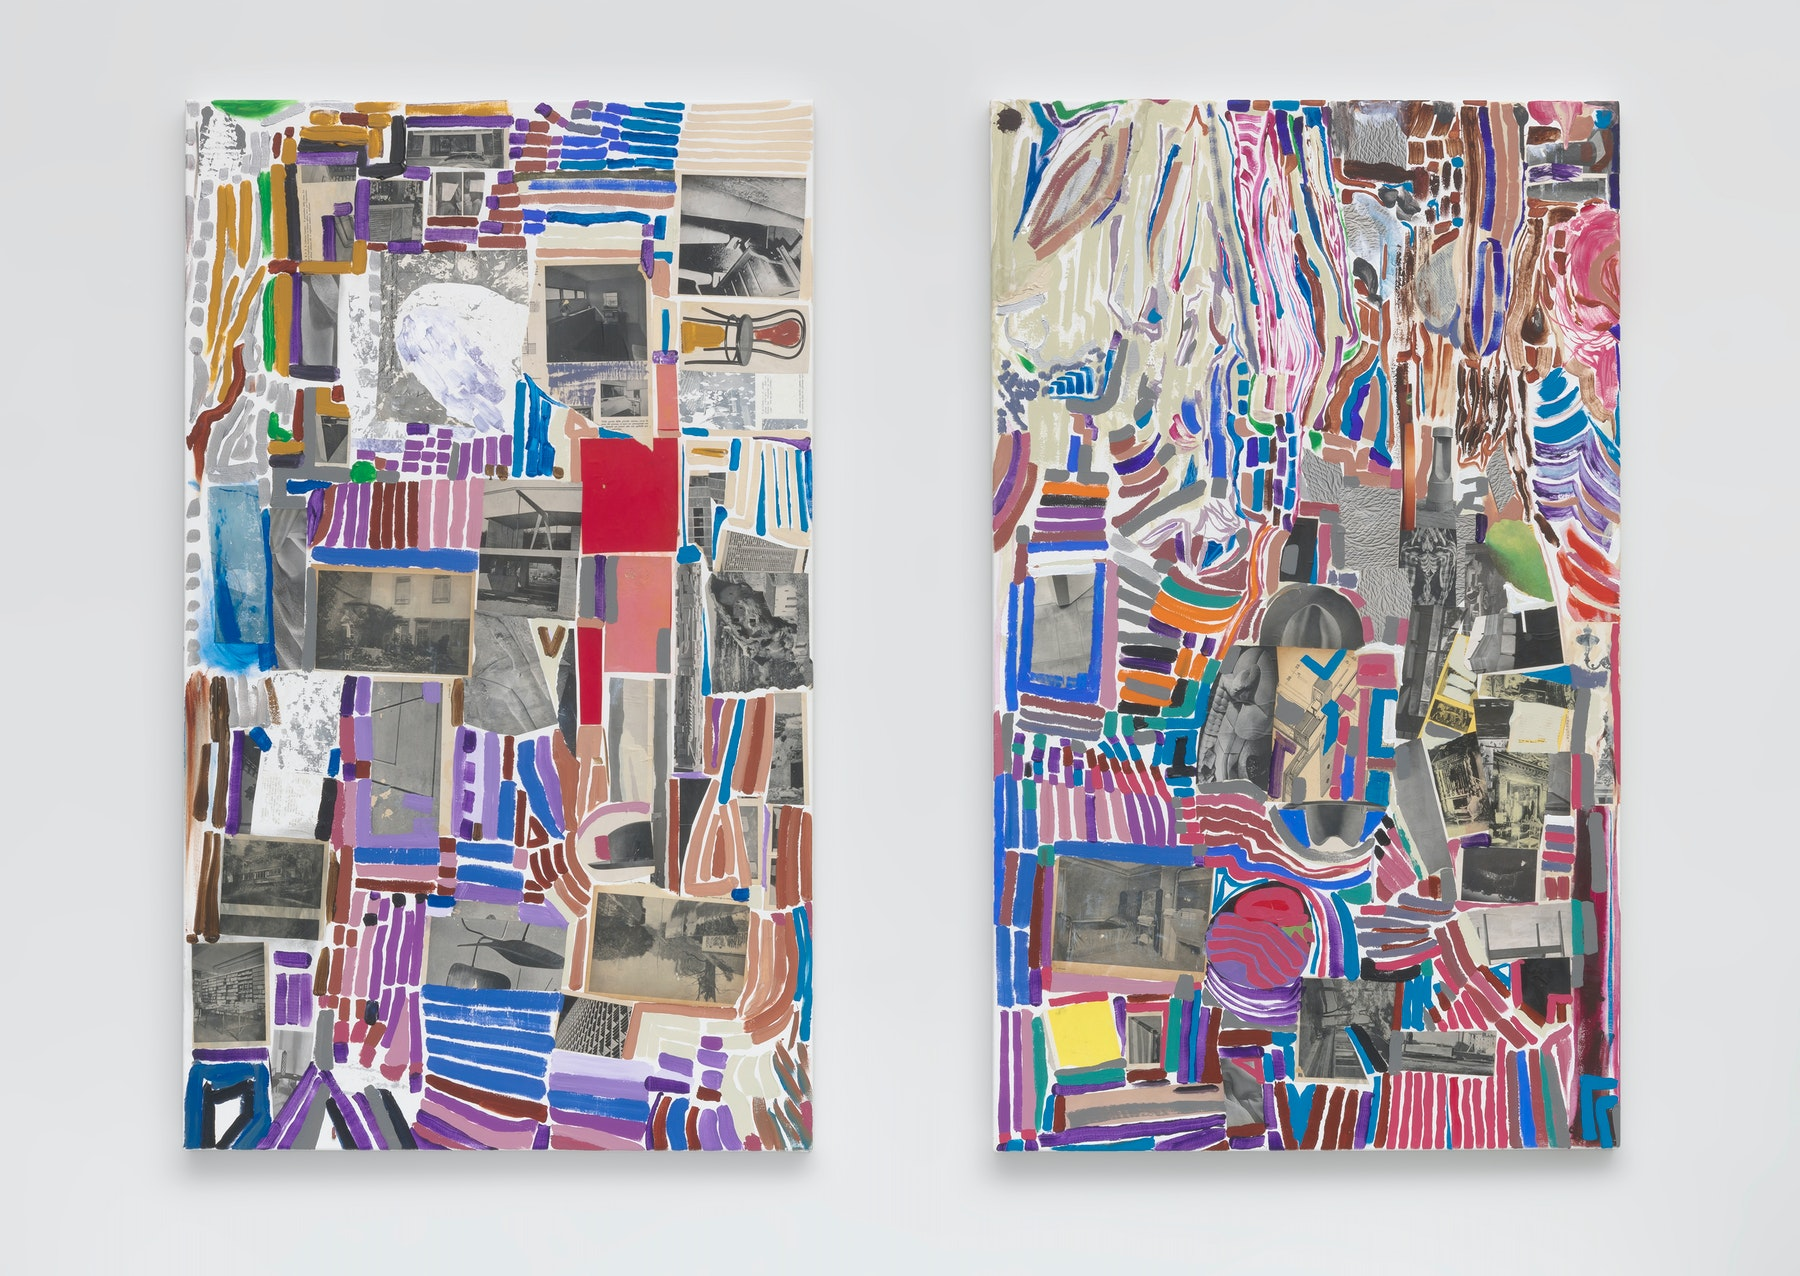 """Steve Roden """"metal mettle metal mettle.,"""" 2020 Acrylic with paper collage 60 x 36"""" [HxW] (152.4 x 91.44 cm) each Inventory #ROD674 Courtesy of the artist and Vielmetter Los Angeles Photo credit: Robert Wedemeyer Signed on back"""